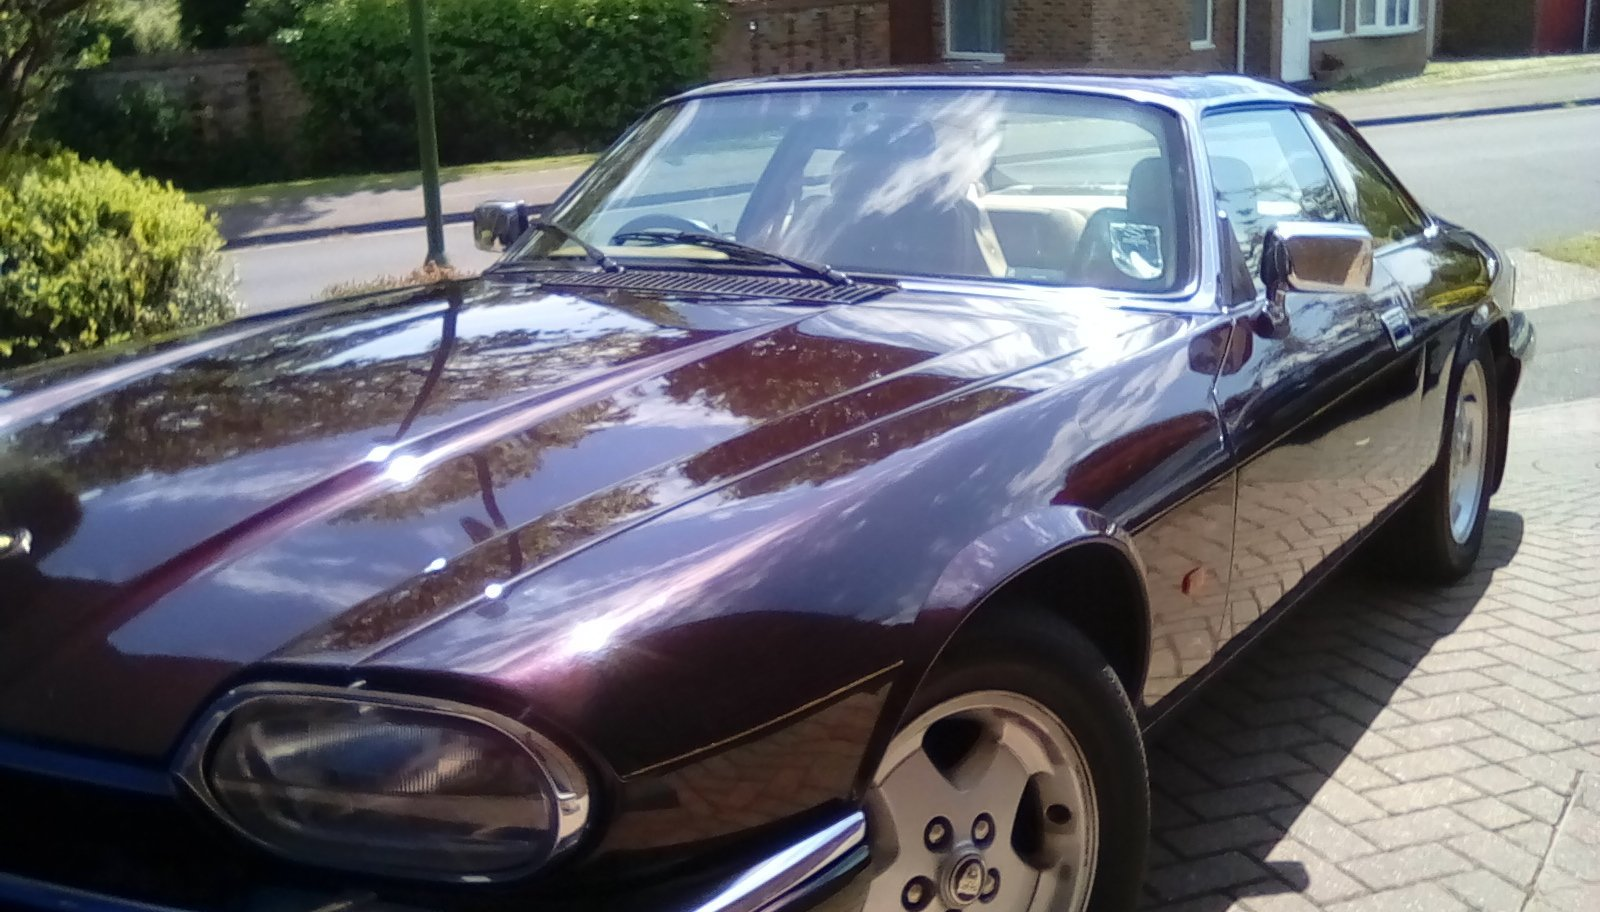 1994 Jaguar XJS 4.0 Coupe. Moroccan Red. For Sale (picture 1 of 6)